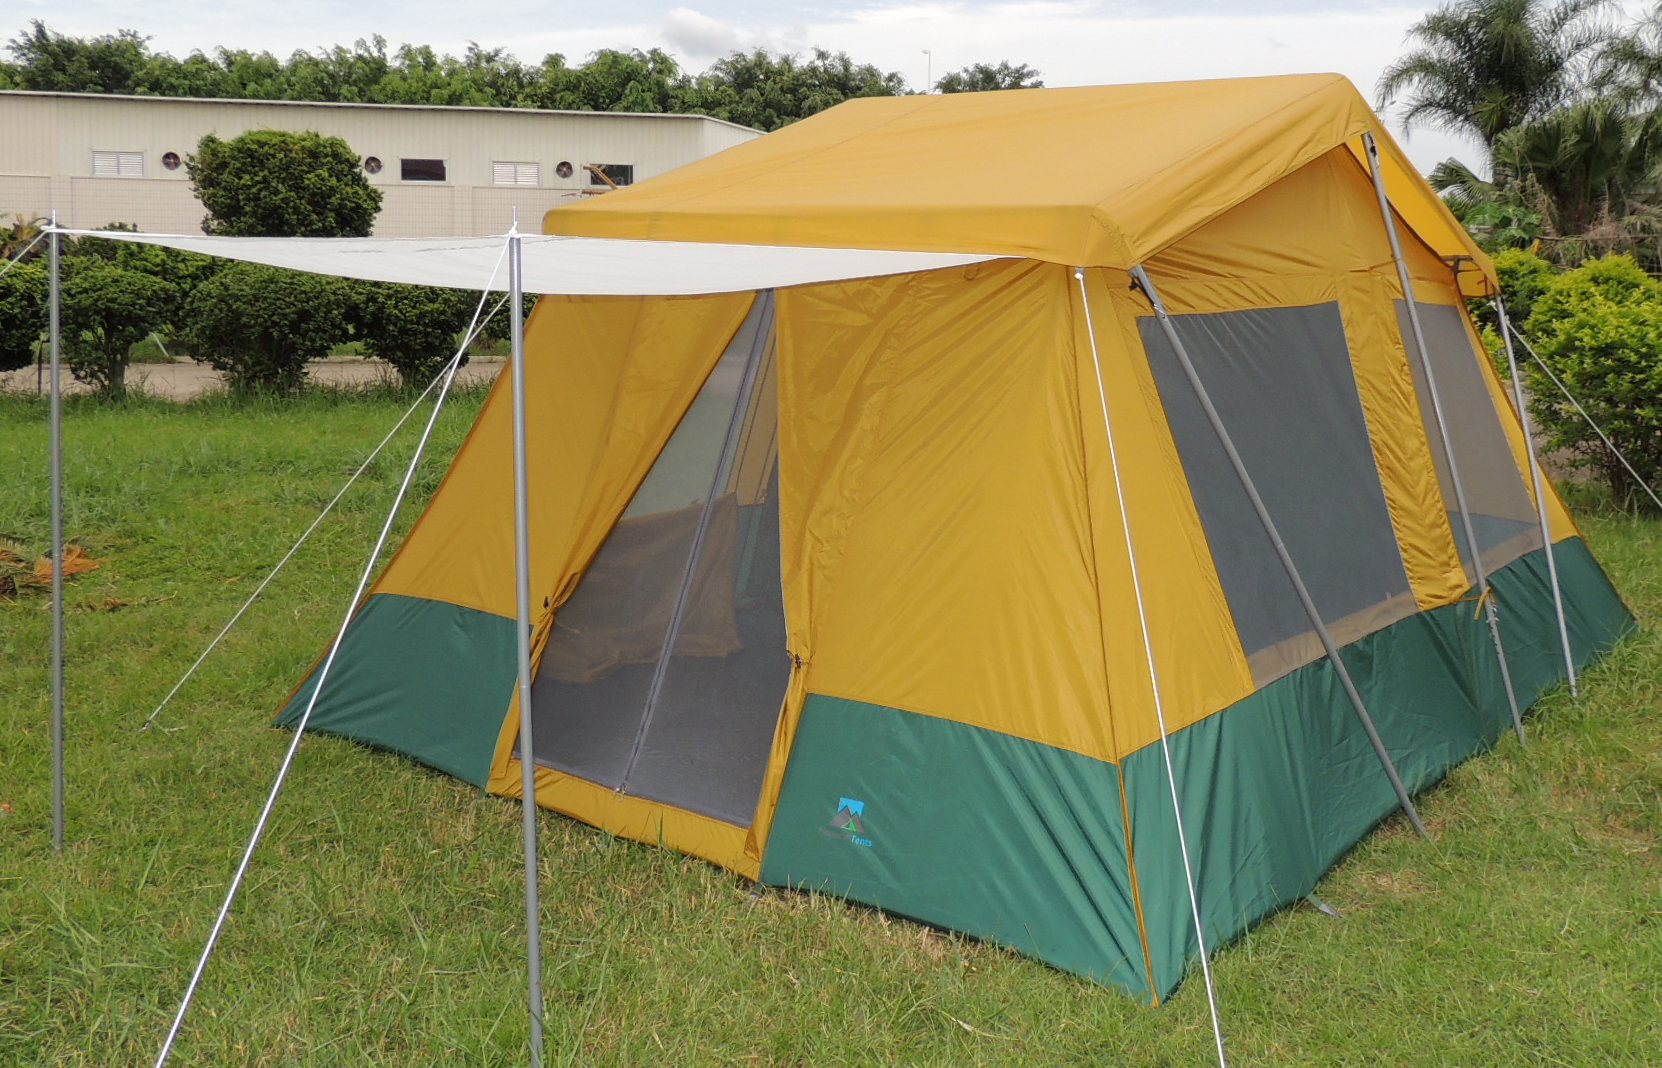 Cabin Tent - Two Room & Two Room Cabin Tent 10u0027 x 14u0027 | Two 10u2032x7u2032 Cabins | Rugged Frame